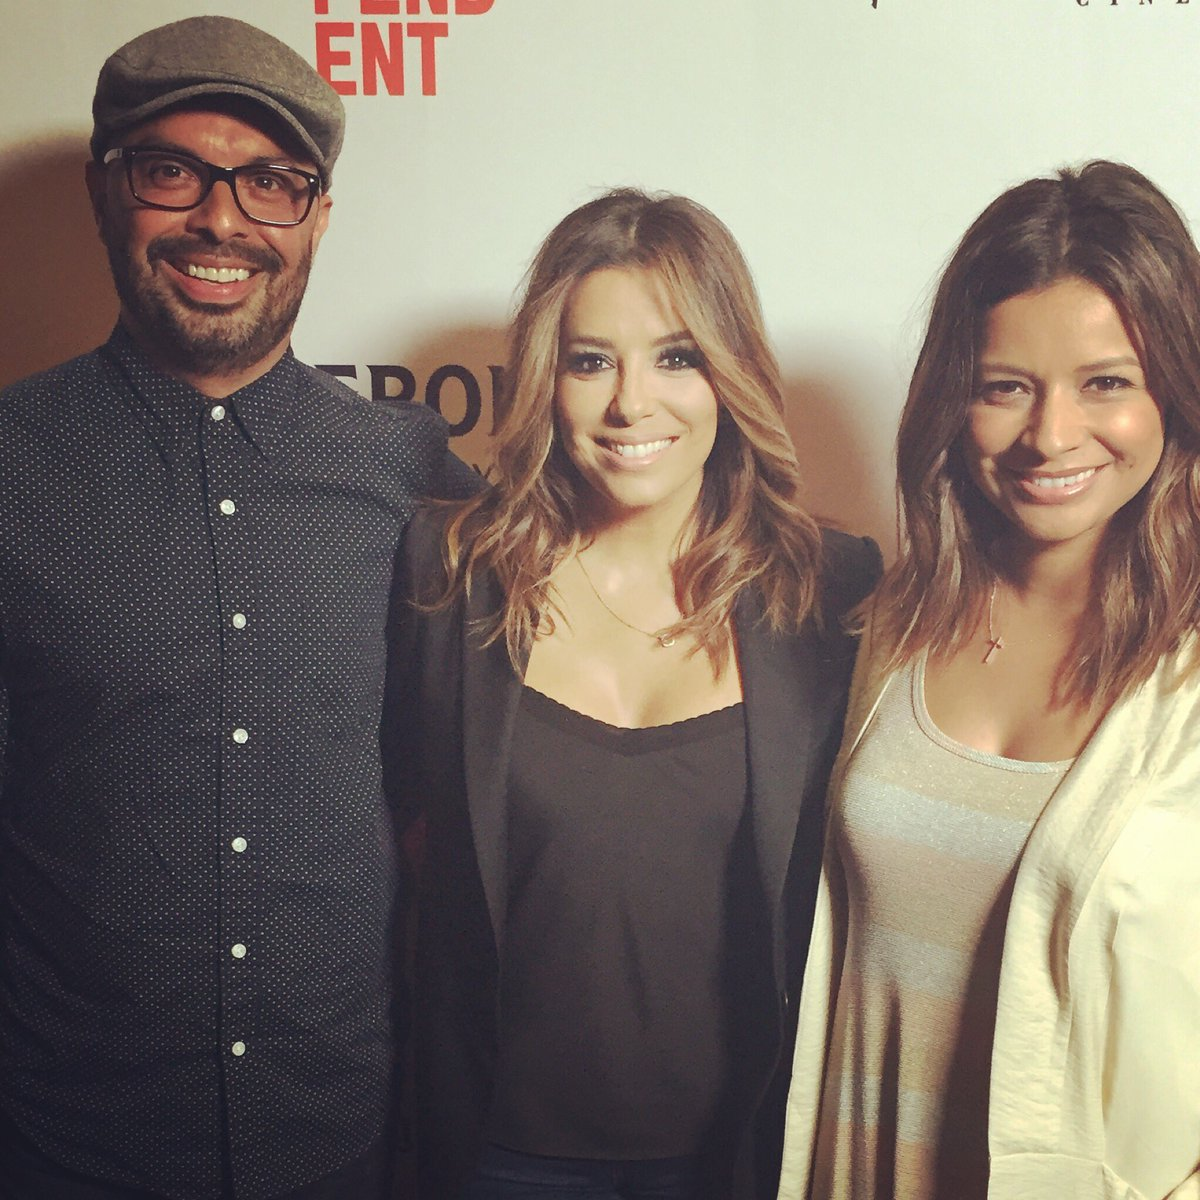 Successful sneak peak of our latest #espn doc at the #lafilmfestival with our director @evalongoria @cbpfilms https://t.co/HAyQLRzaVZ